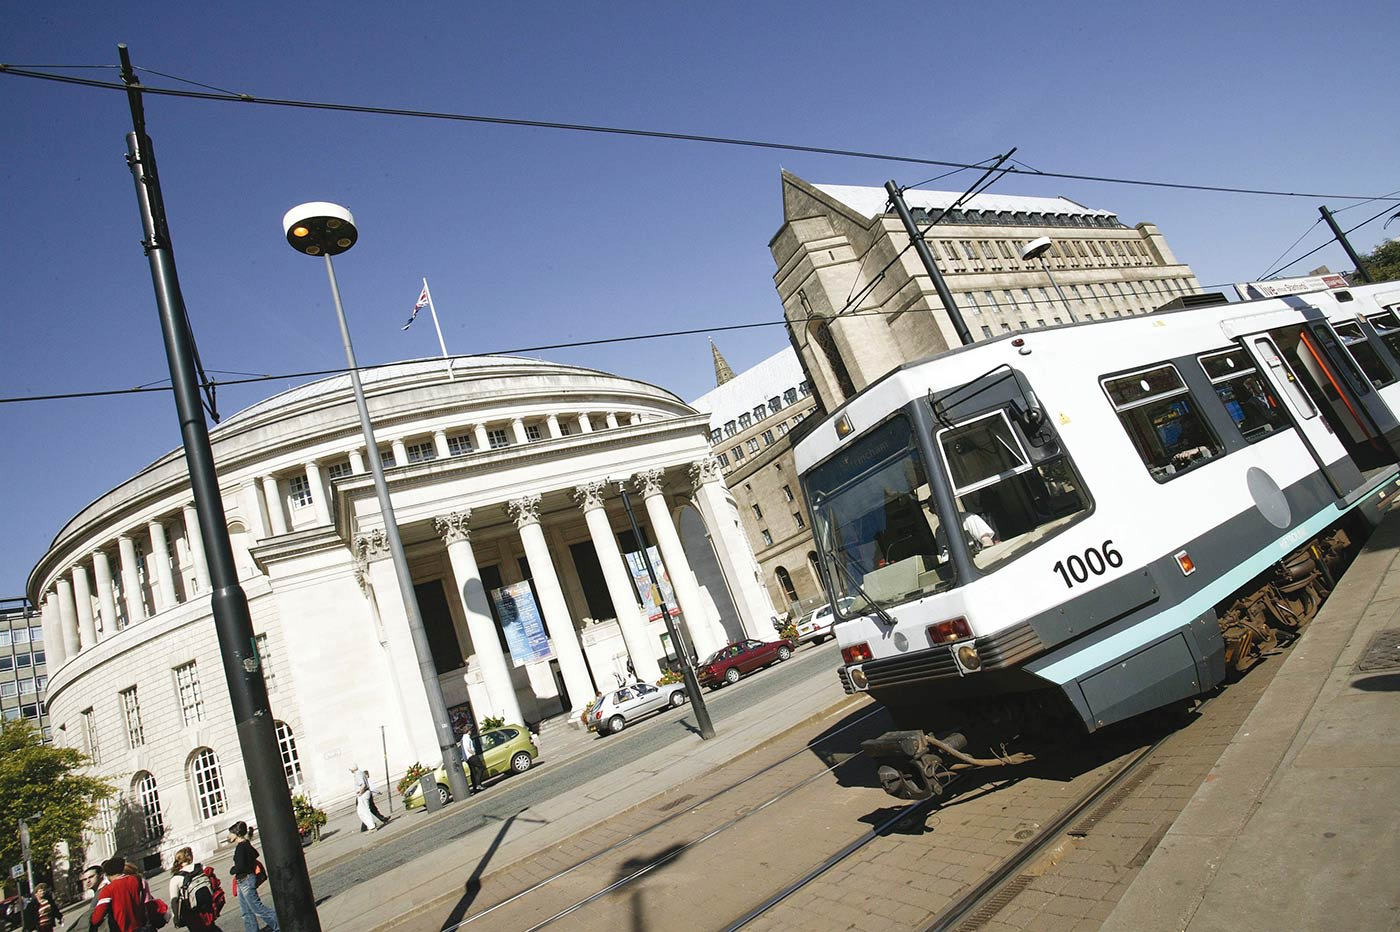 The convenient tram network is ideal for exploring more of the city